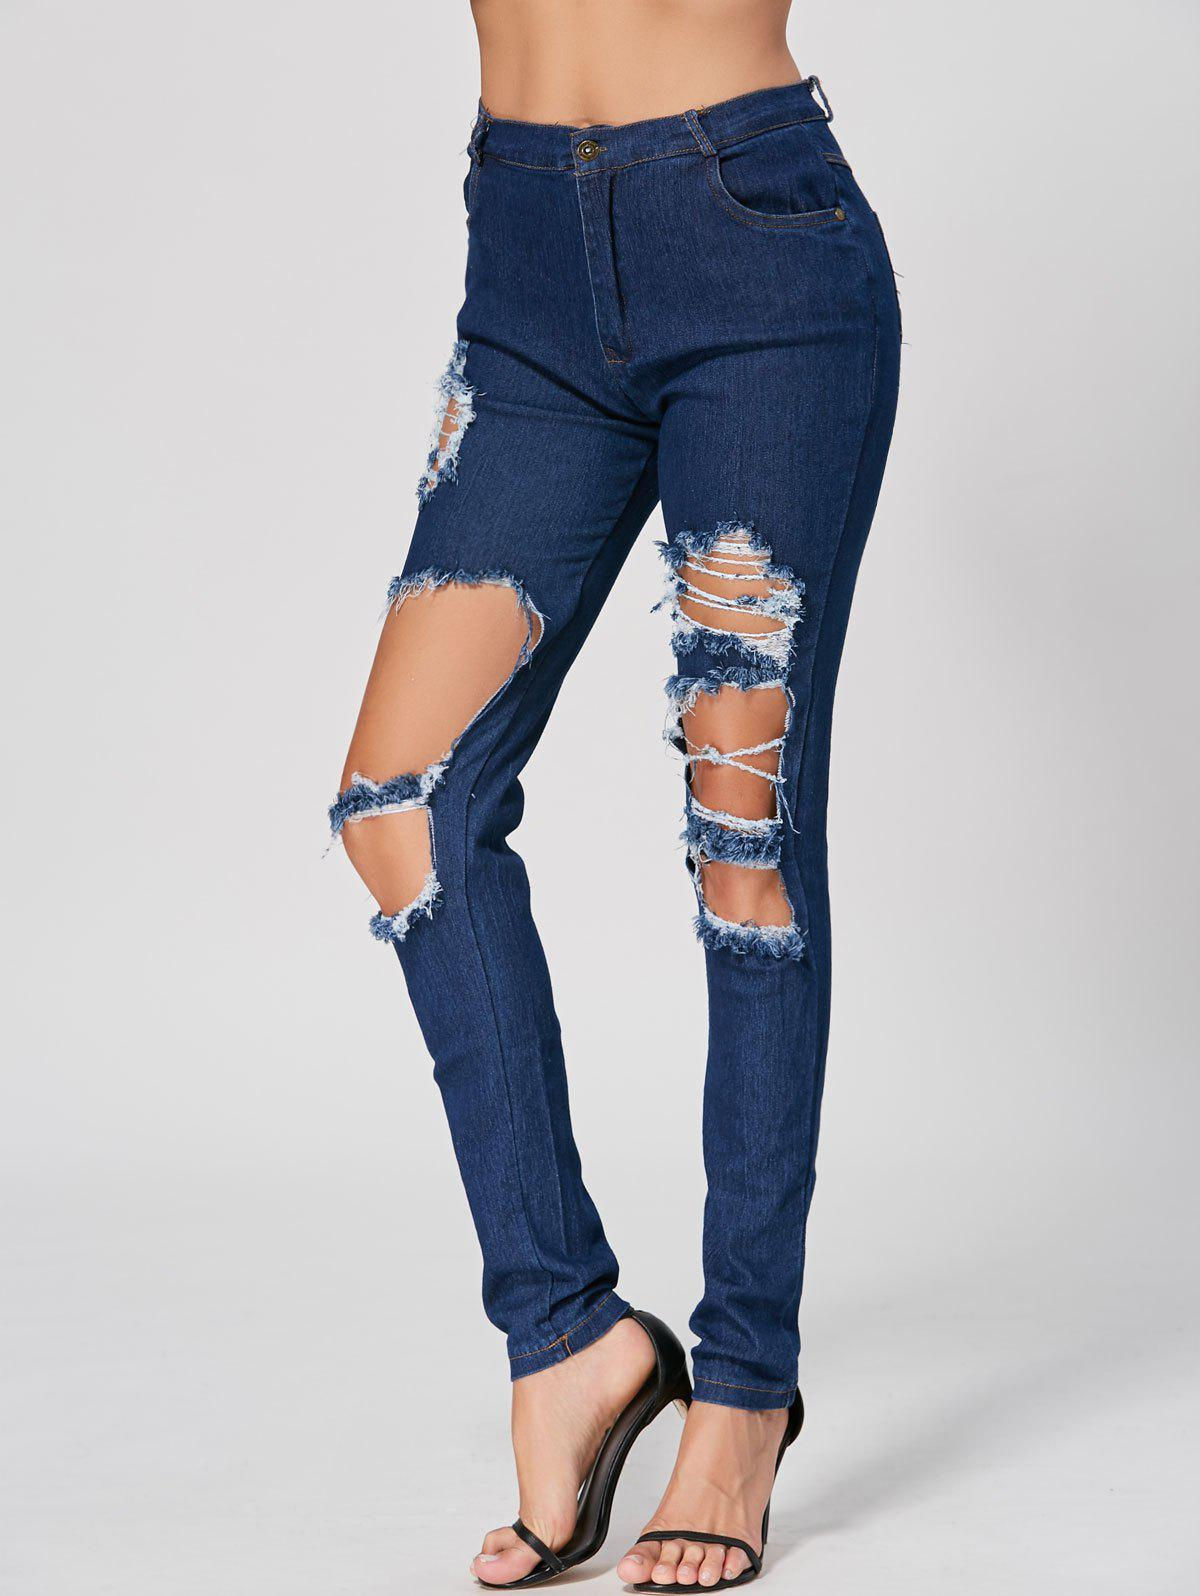 Fashionable High Waist Broken Hole Design Bodycon Ripped Jeans For Women, Deep blue